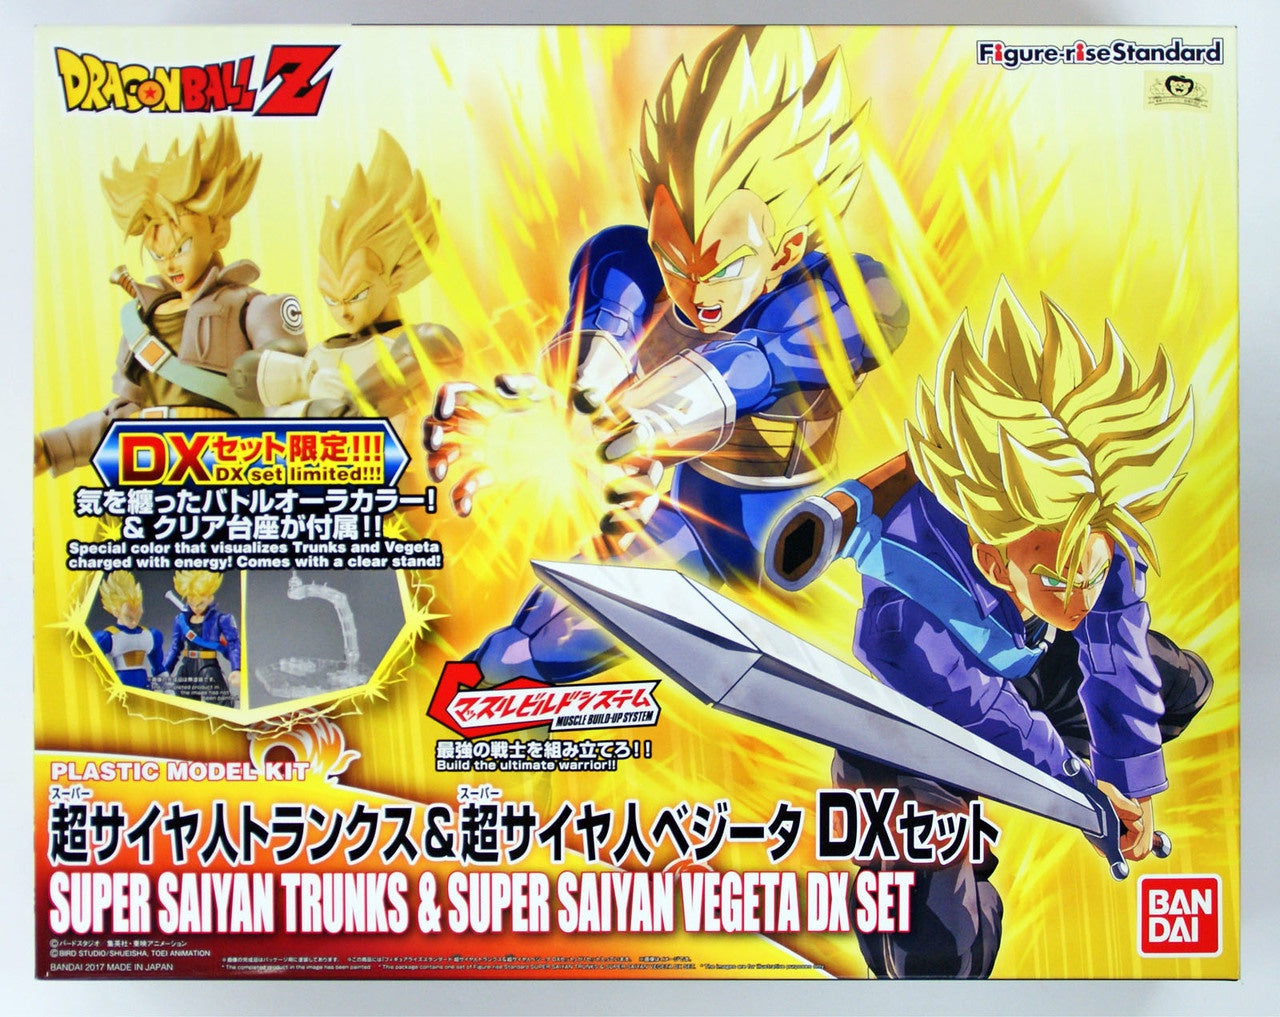 Figure-rise Super Saiyan Trunks & Super Saiyan Vegeta DX Set